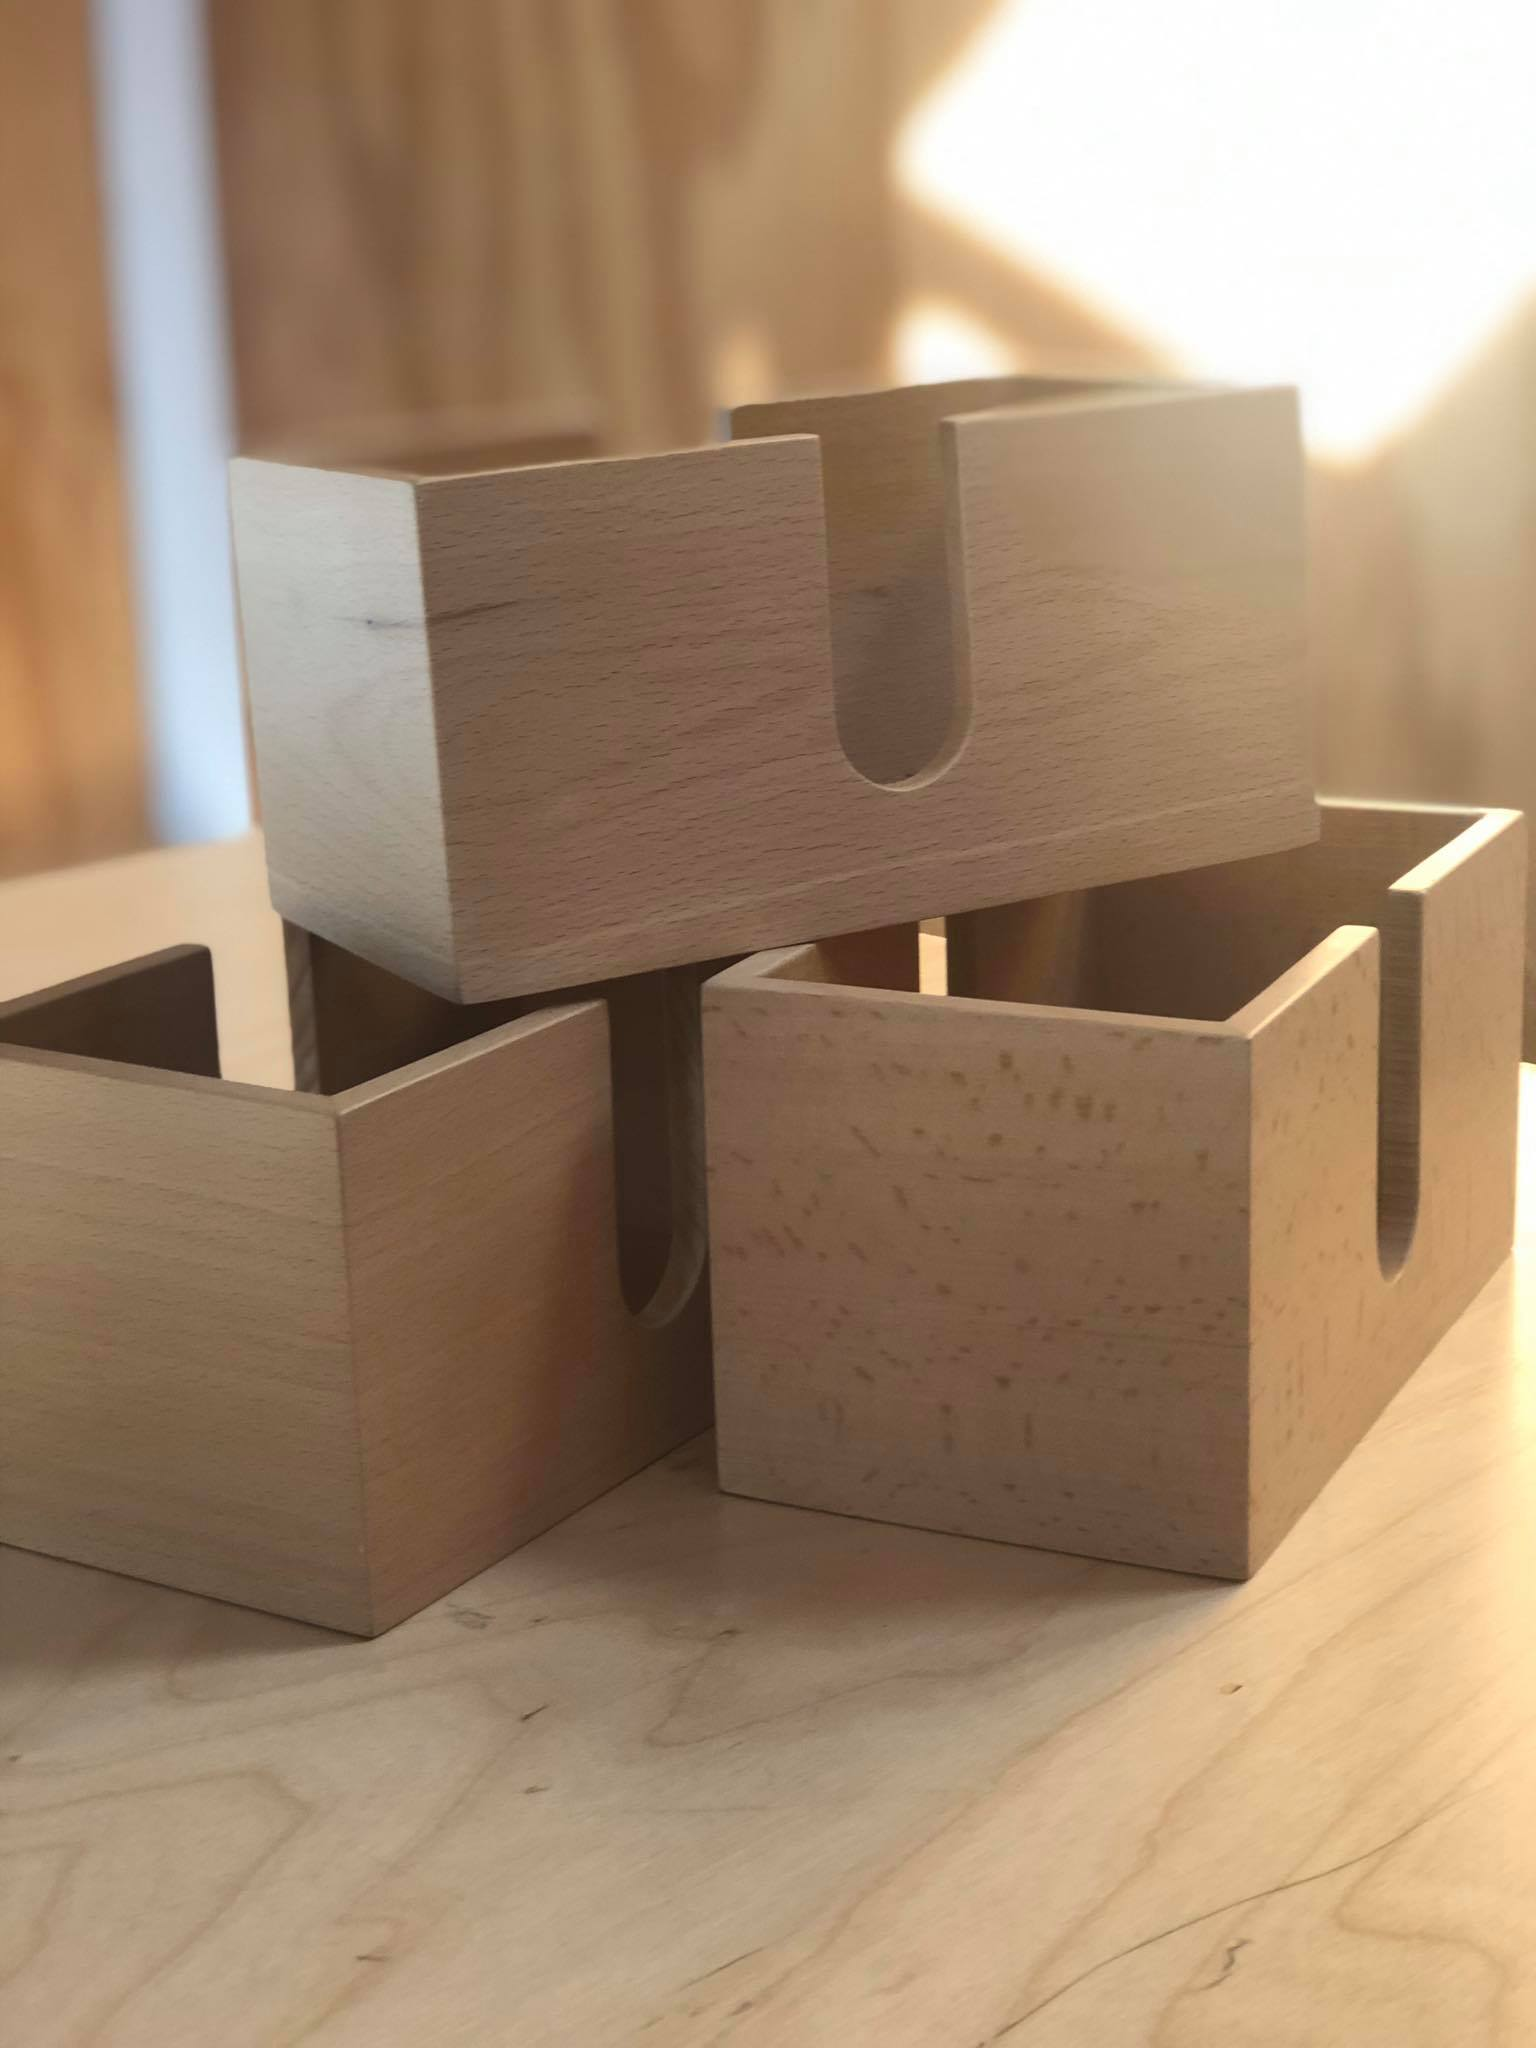 Refurbished Wooden Serviette Holders